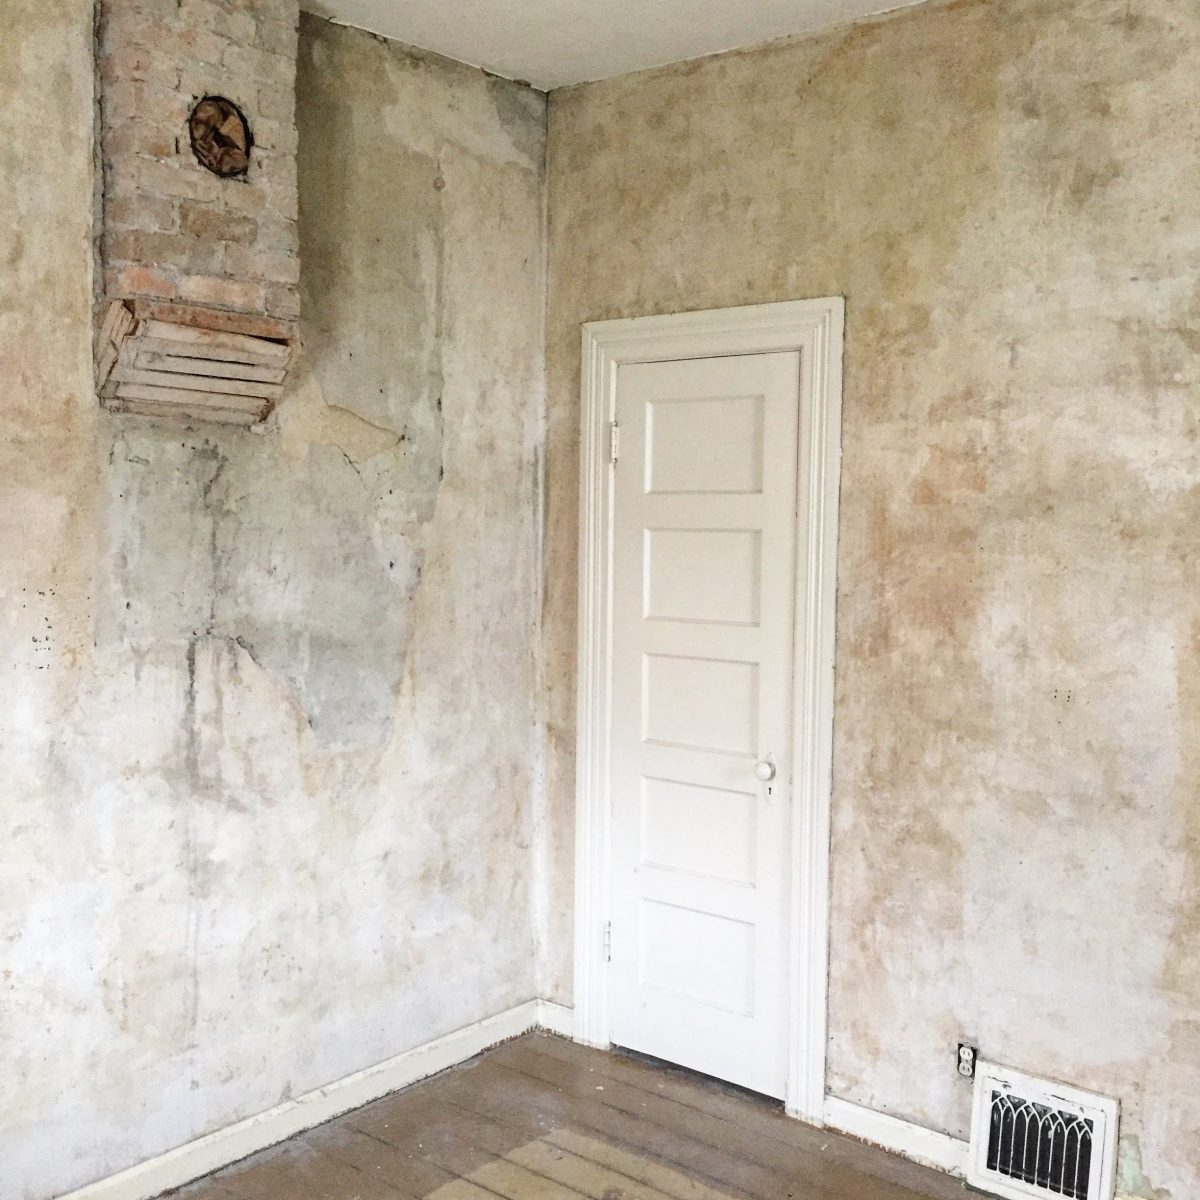 Perfect 100 Year Old Plaster Walls, No Wallpaper